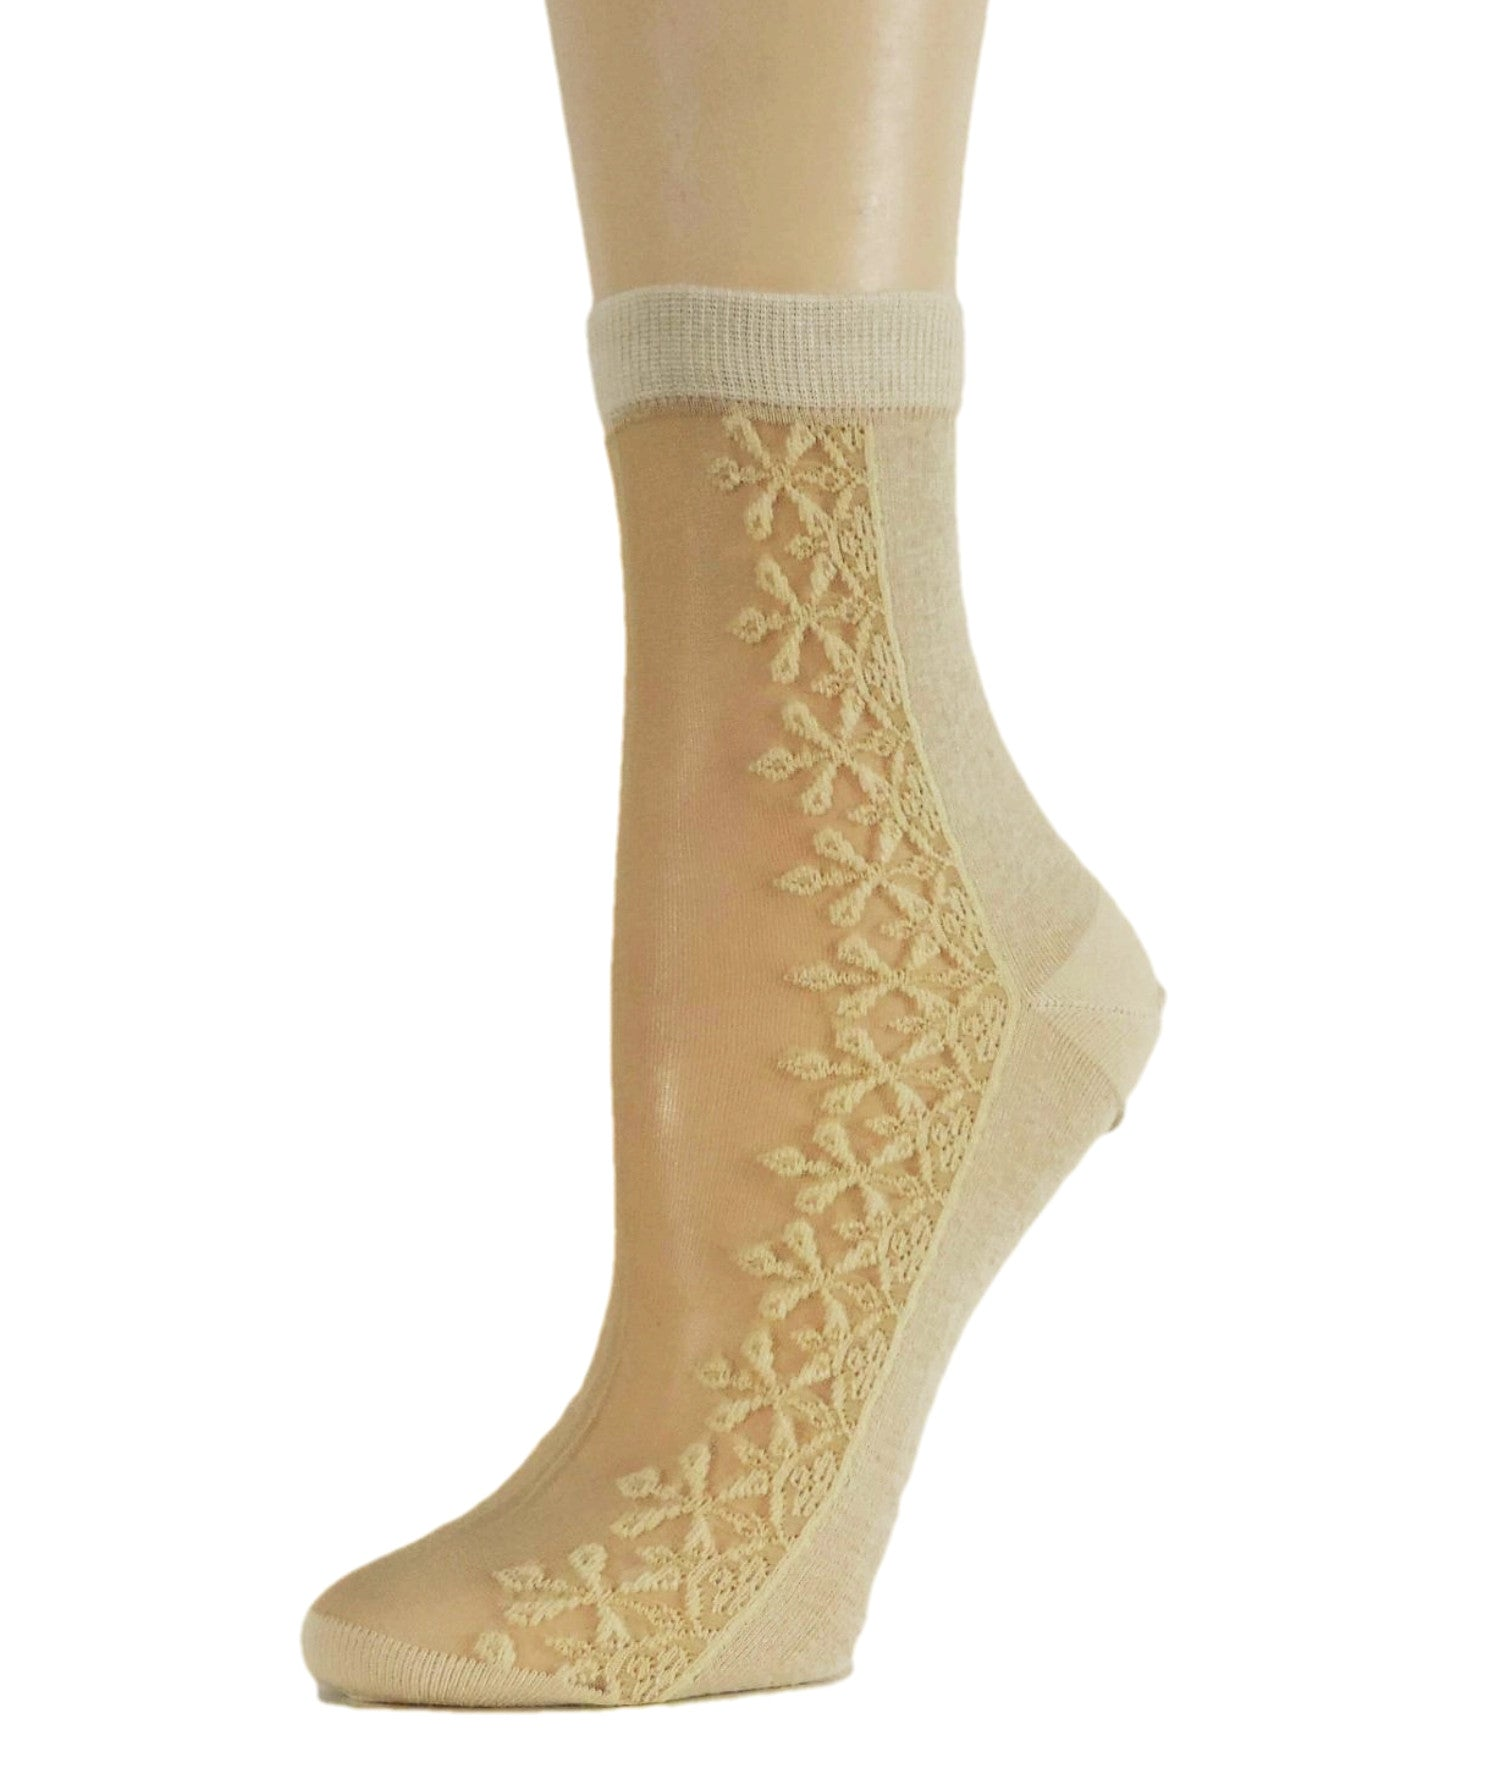 Sequence Floral Sheer Socks - Global Trendz Fashion®